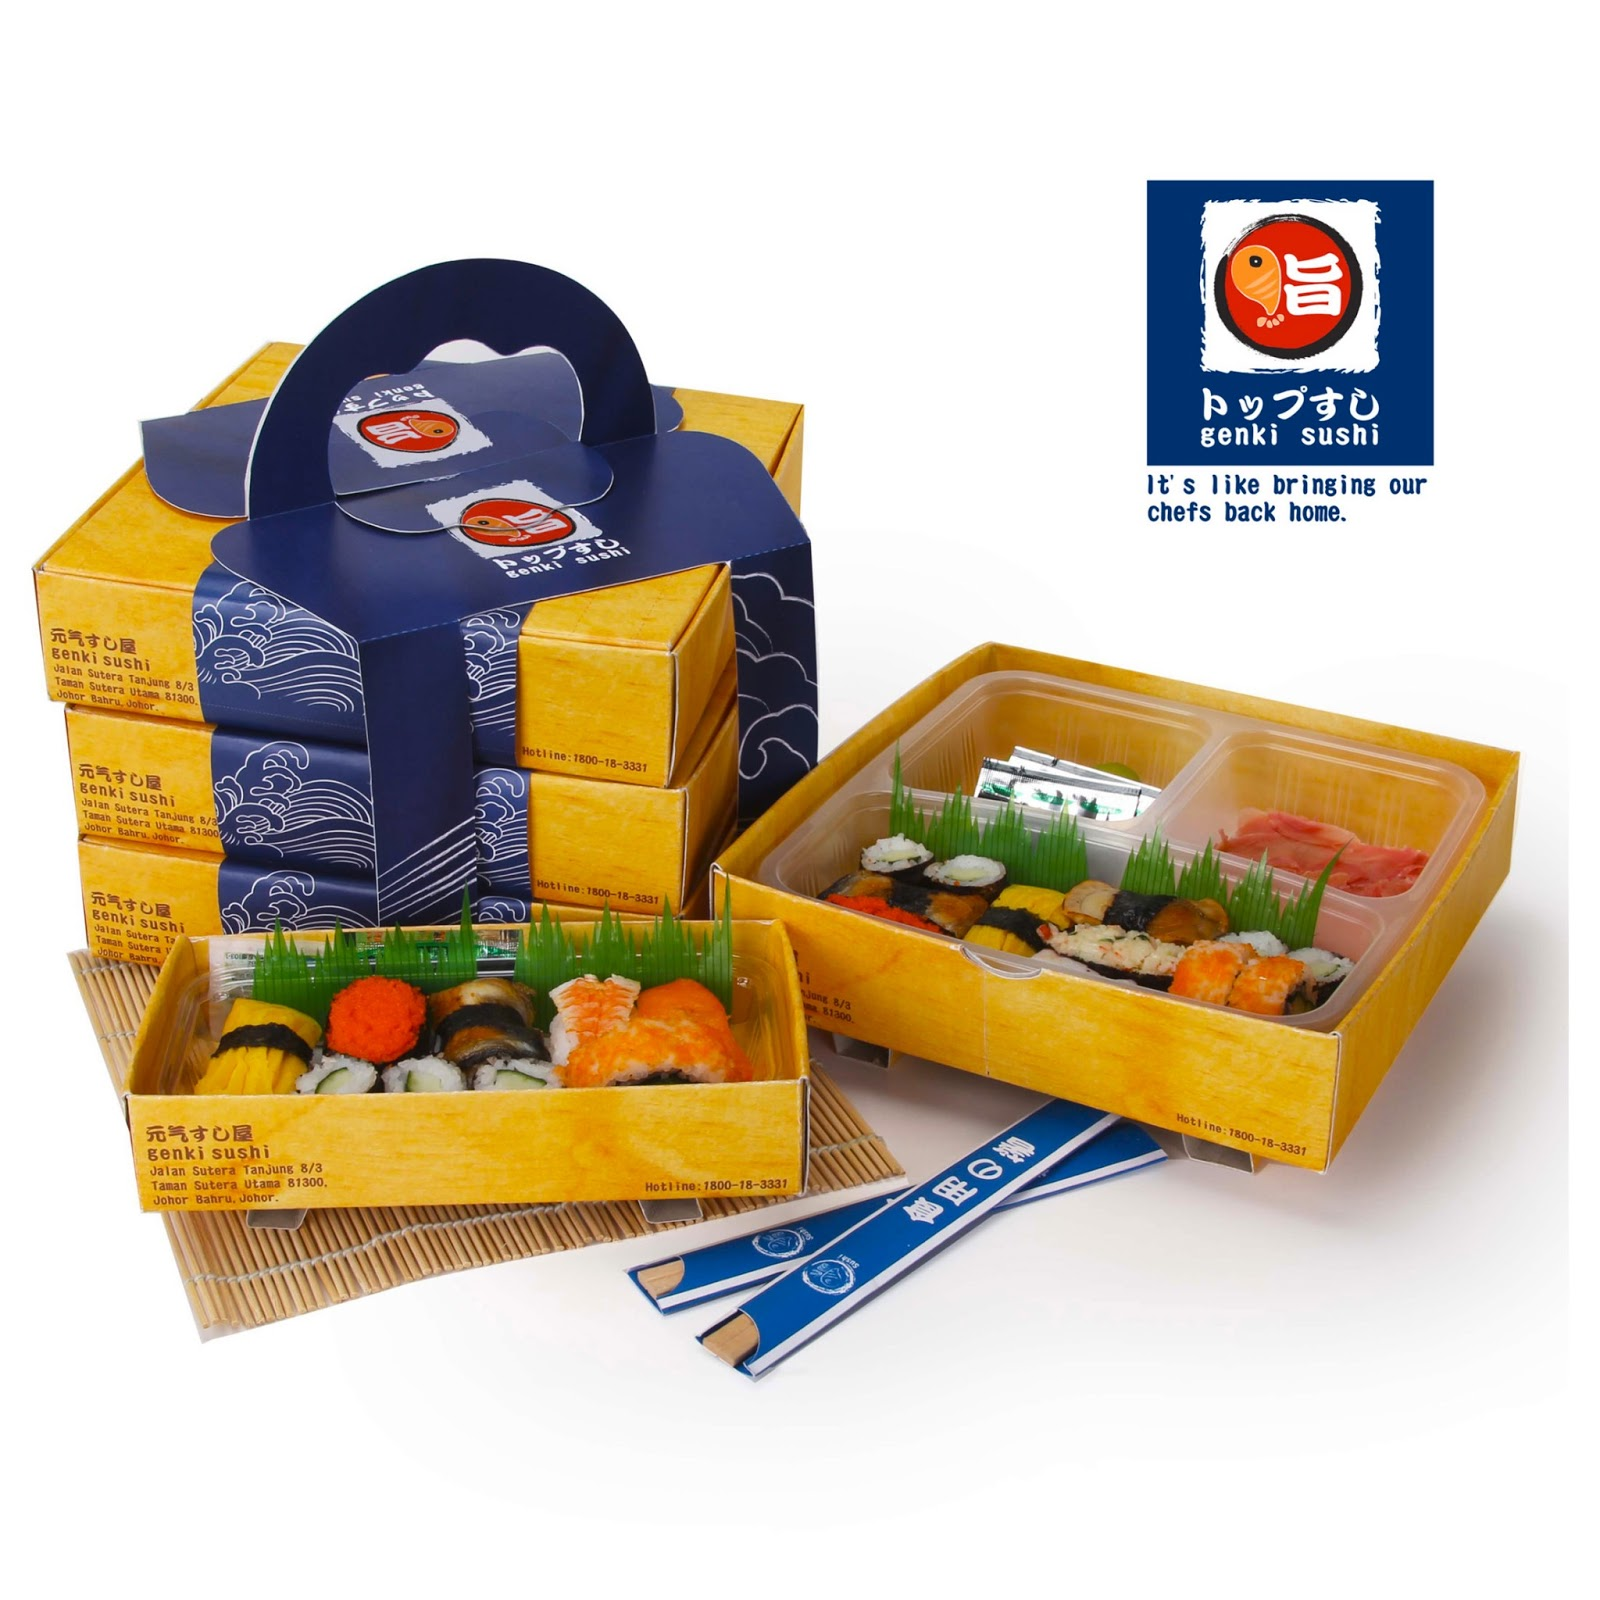 Genki Sushi Take Away Student Project On Packaging Of The World Creative Package Design Gallery